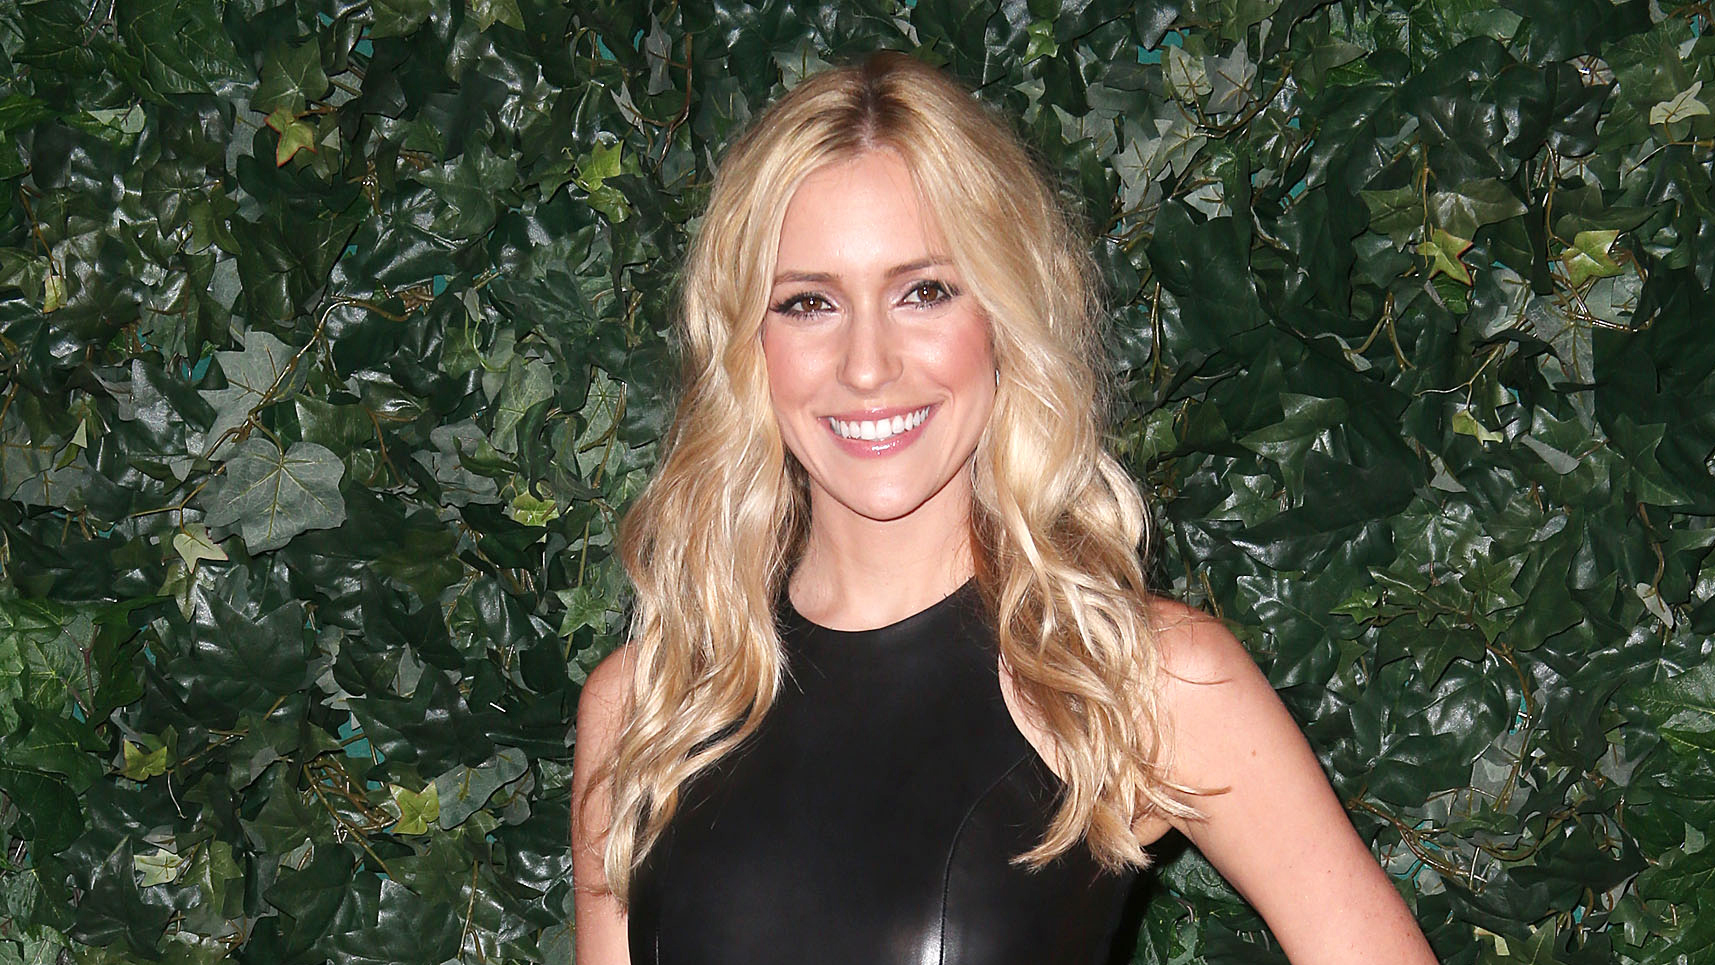 PHOTO:Actress Kristen Cavallari attends the QVC Red Carpet Style Event, at the Four Seasons Hotel Los Angeles on Feb. 22, 2013 in Beverly Hills, Calif.